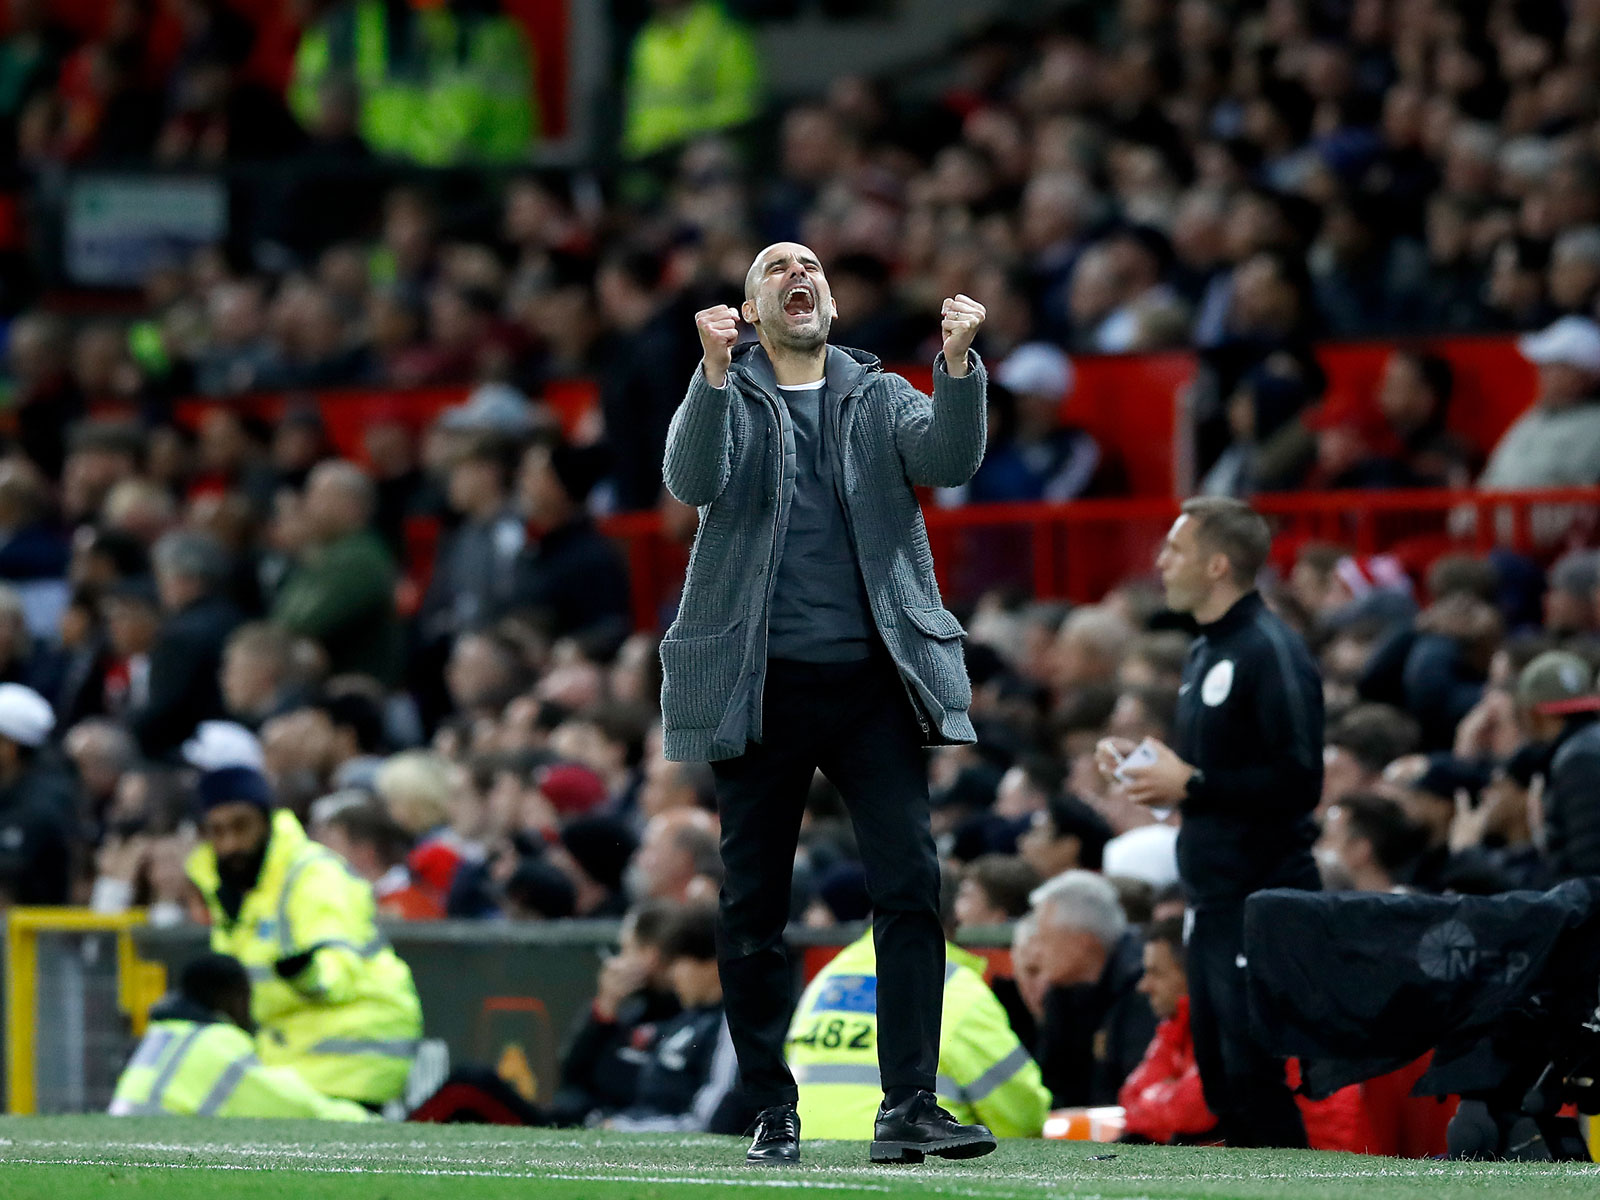 Pep Guardiola celebrates a goal in the Manchester Derby